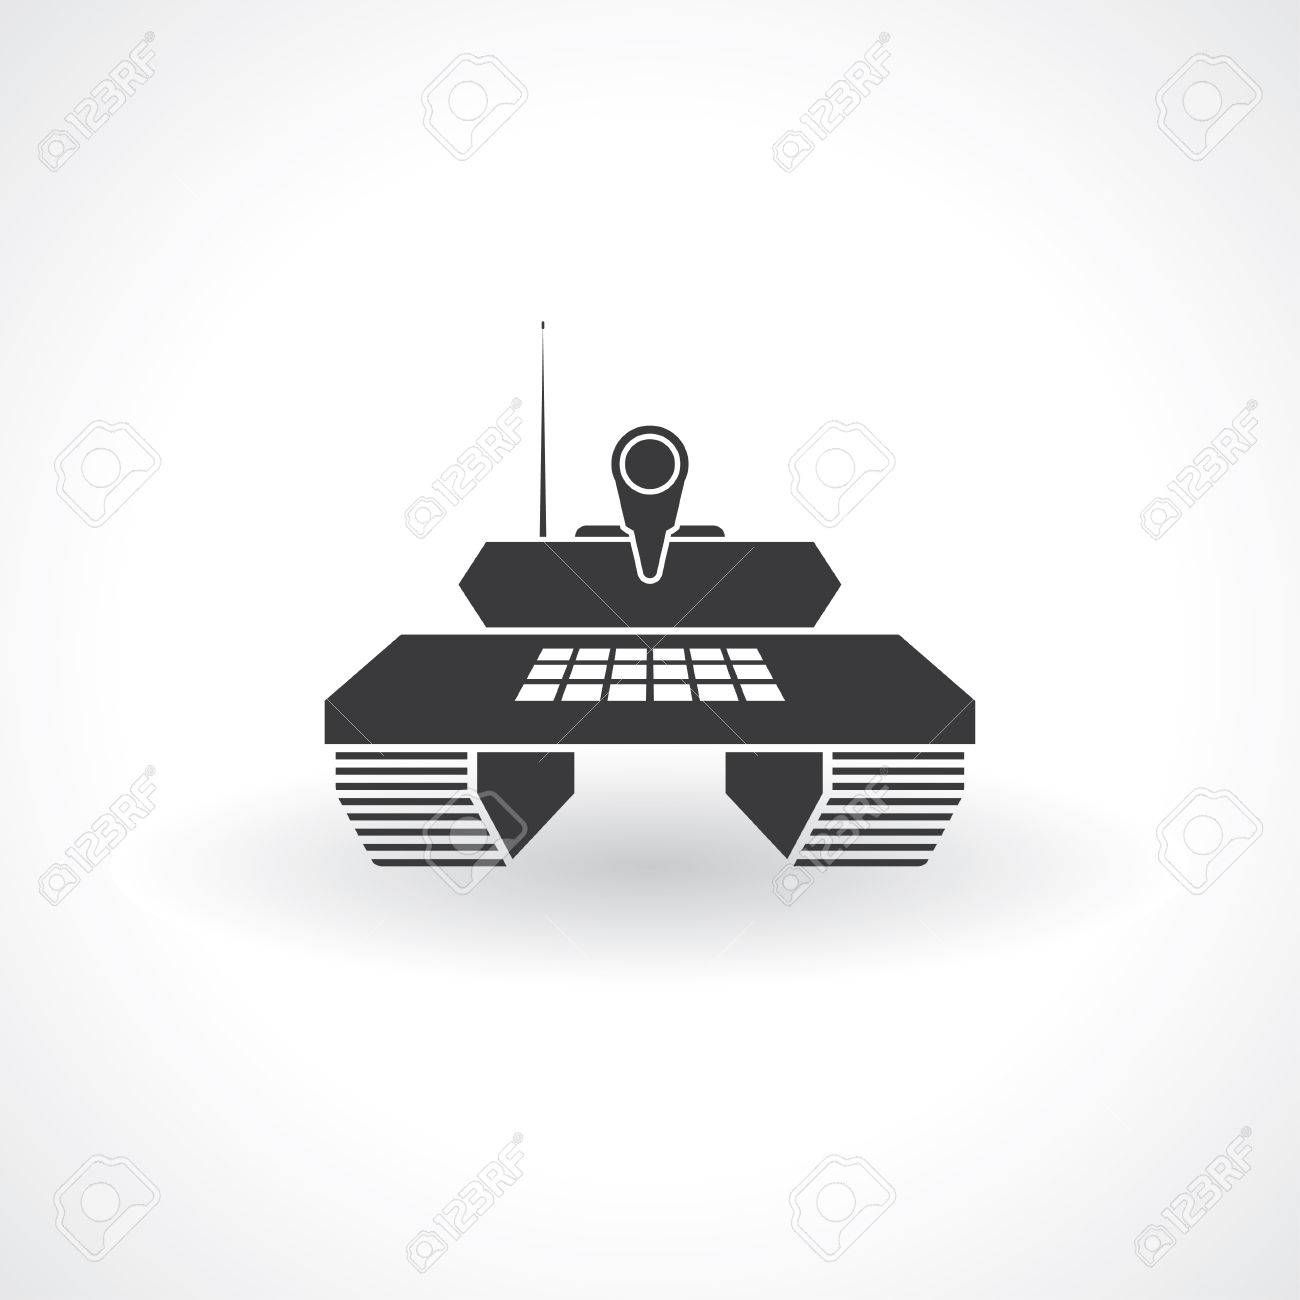 tank icon royalty free cliparts vectors and stock illustration image 48061164 tank icon